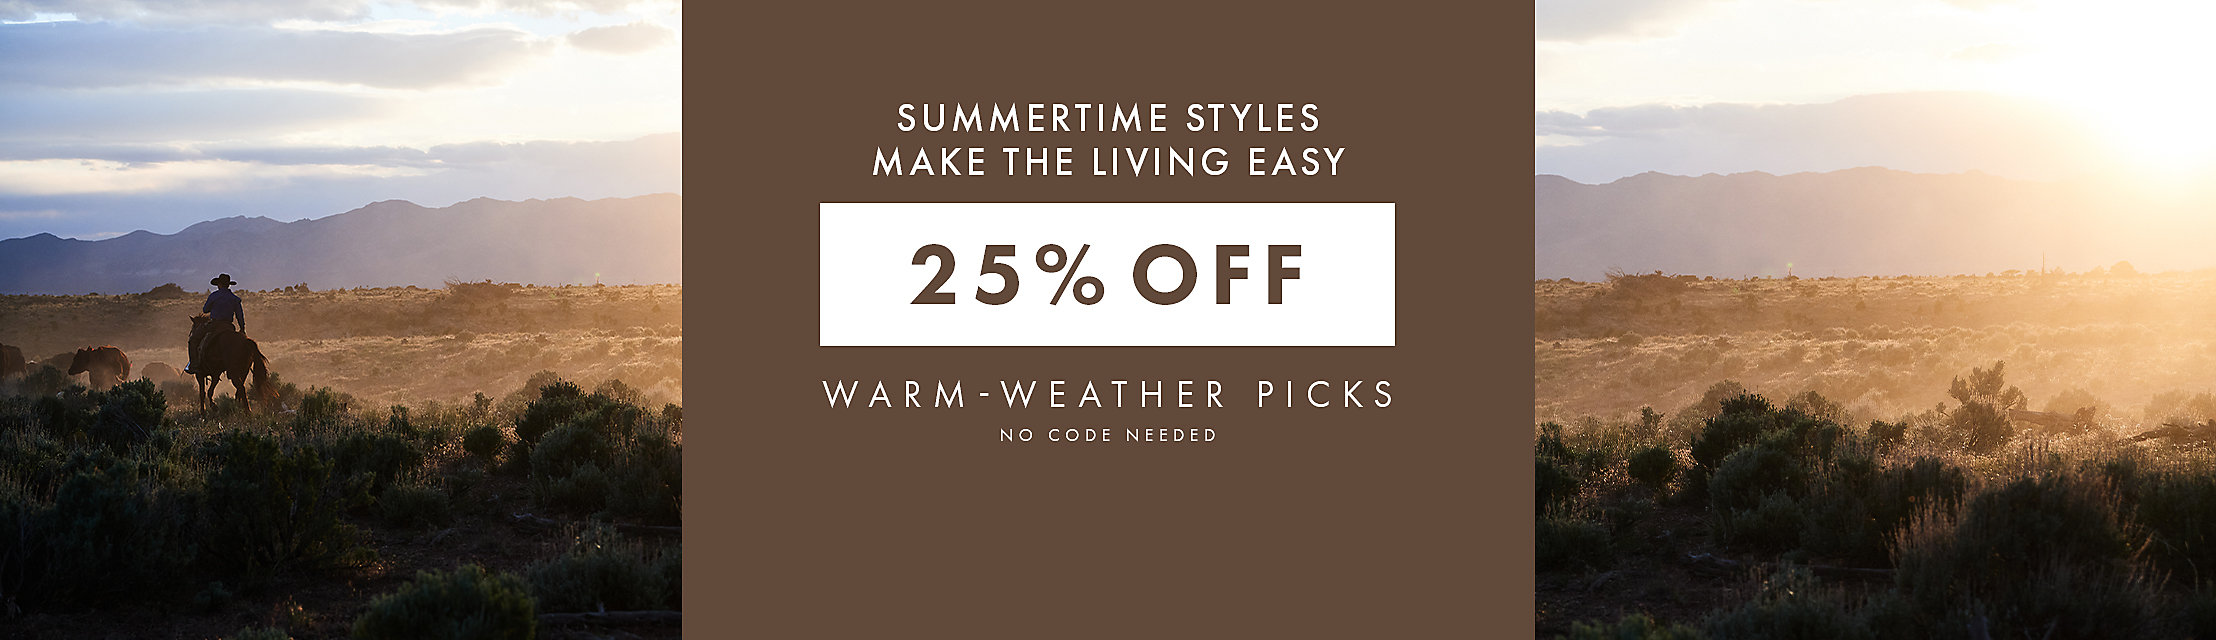 25% OFF WARM-WEATHER PICKS